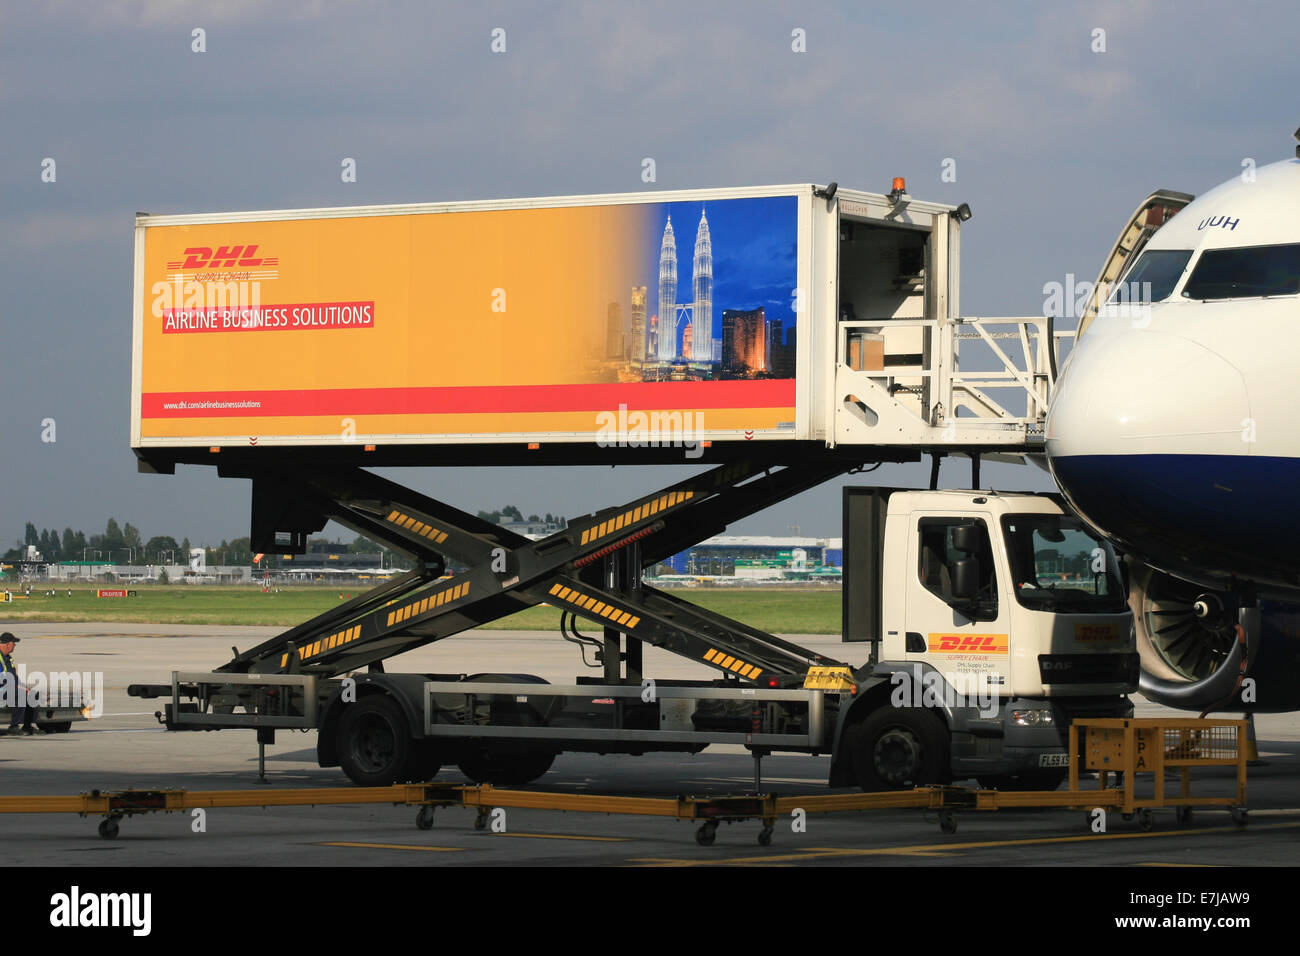 Dhl Airline Business Solutions Catering Truck Stock Photo